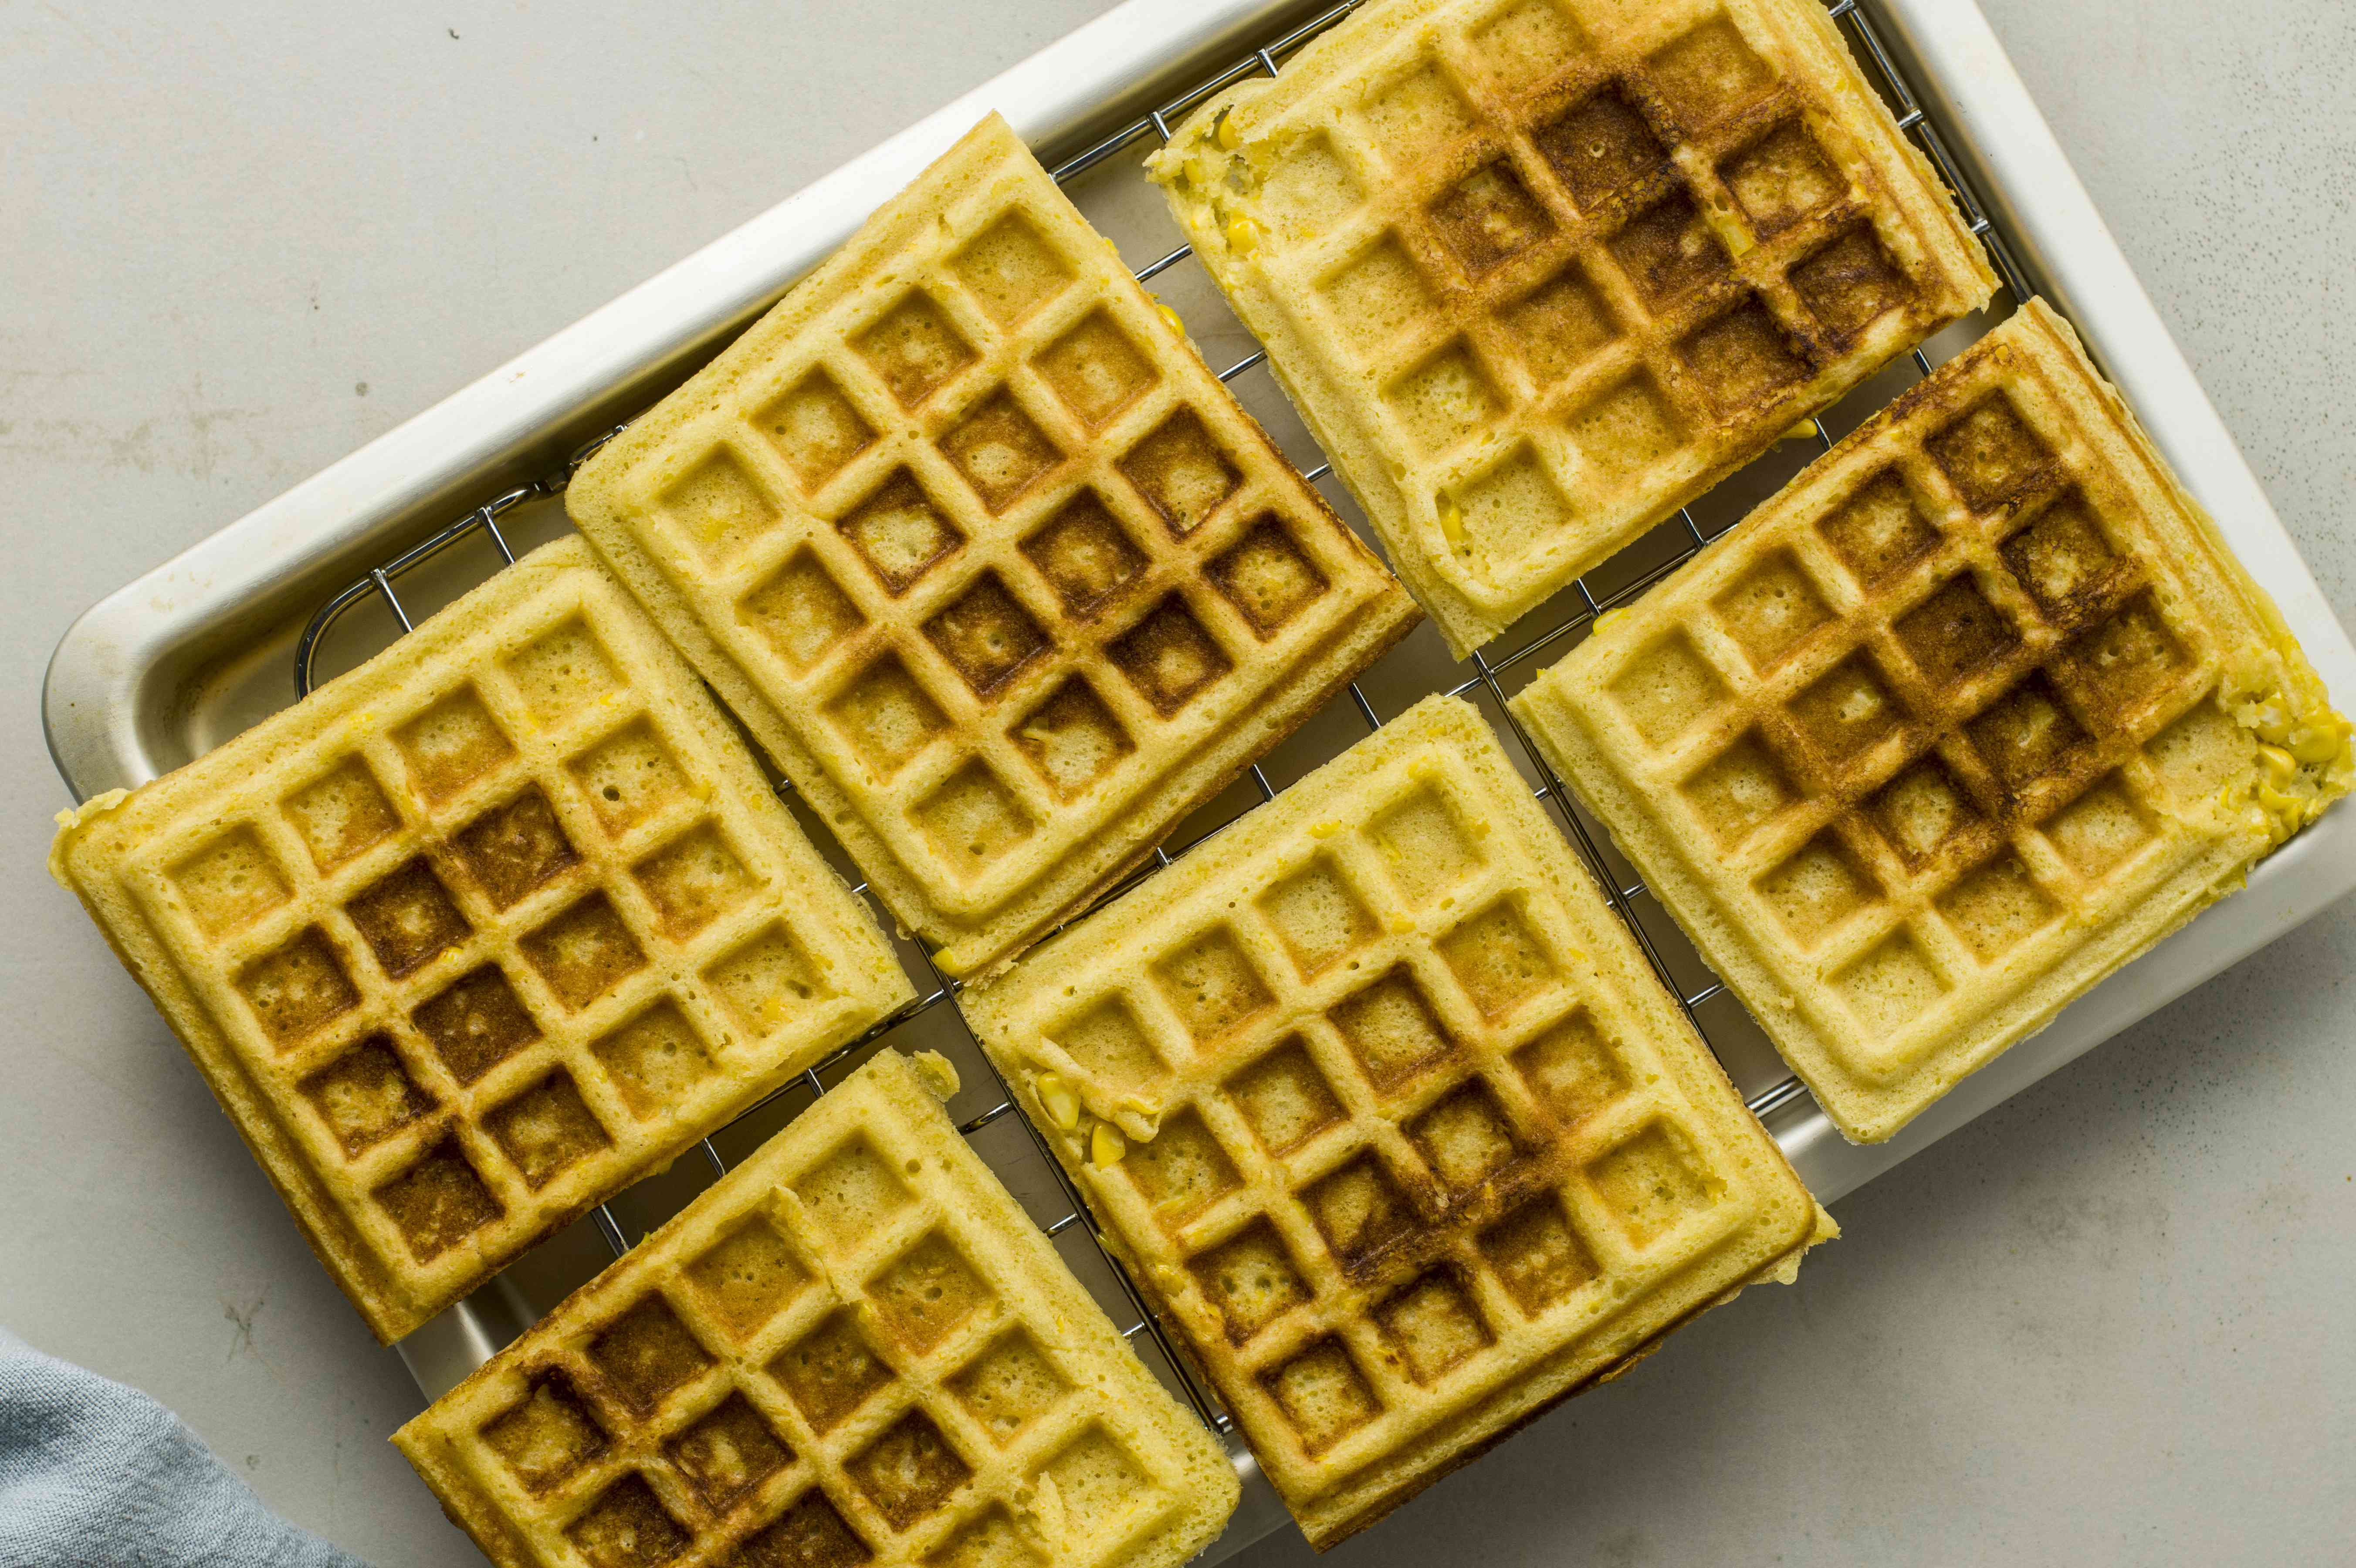 Place cooked waffles on cooling rack